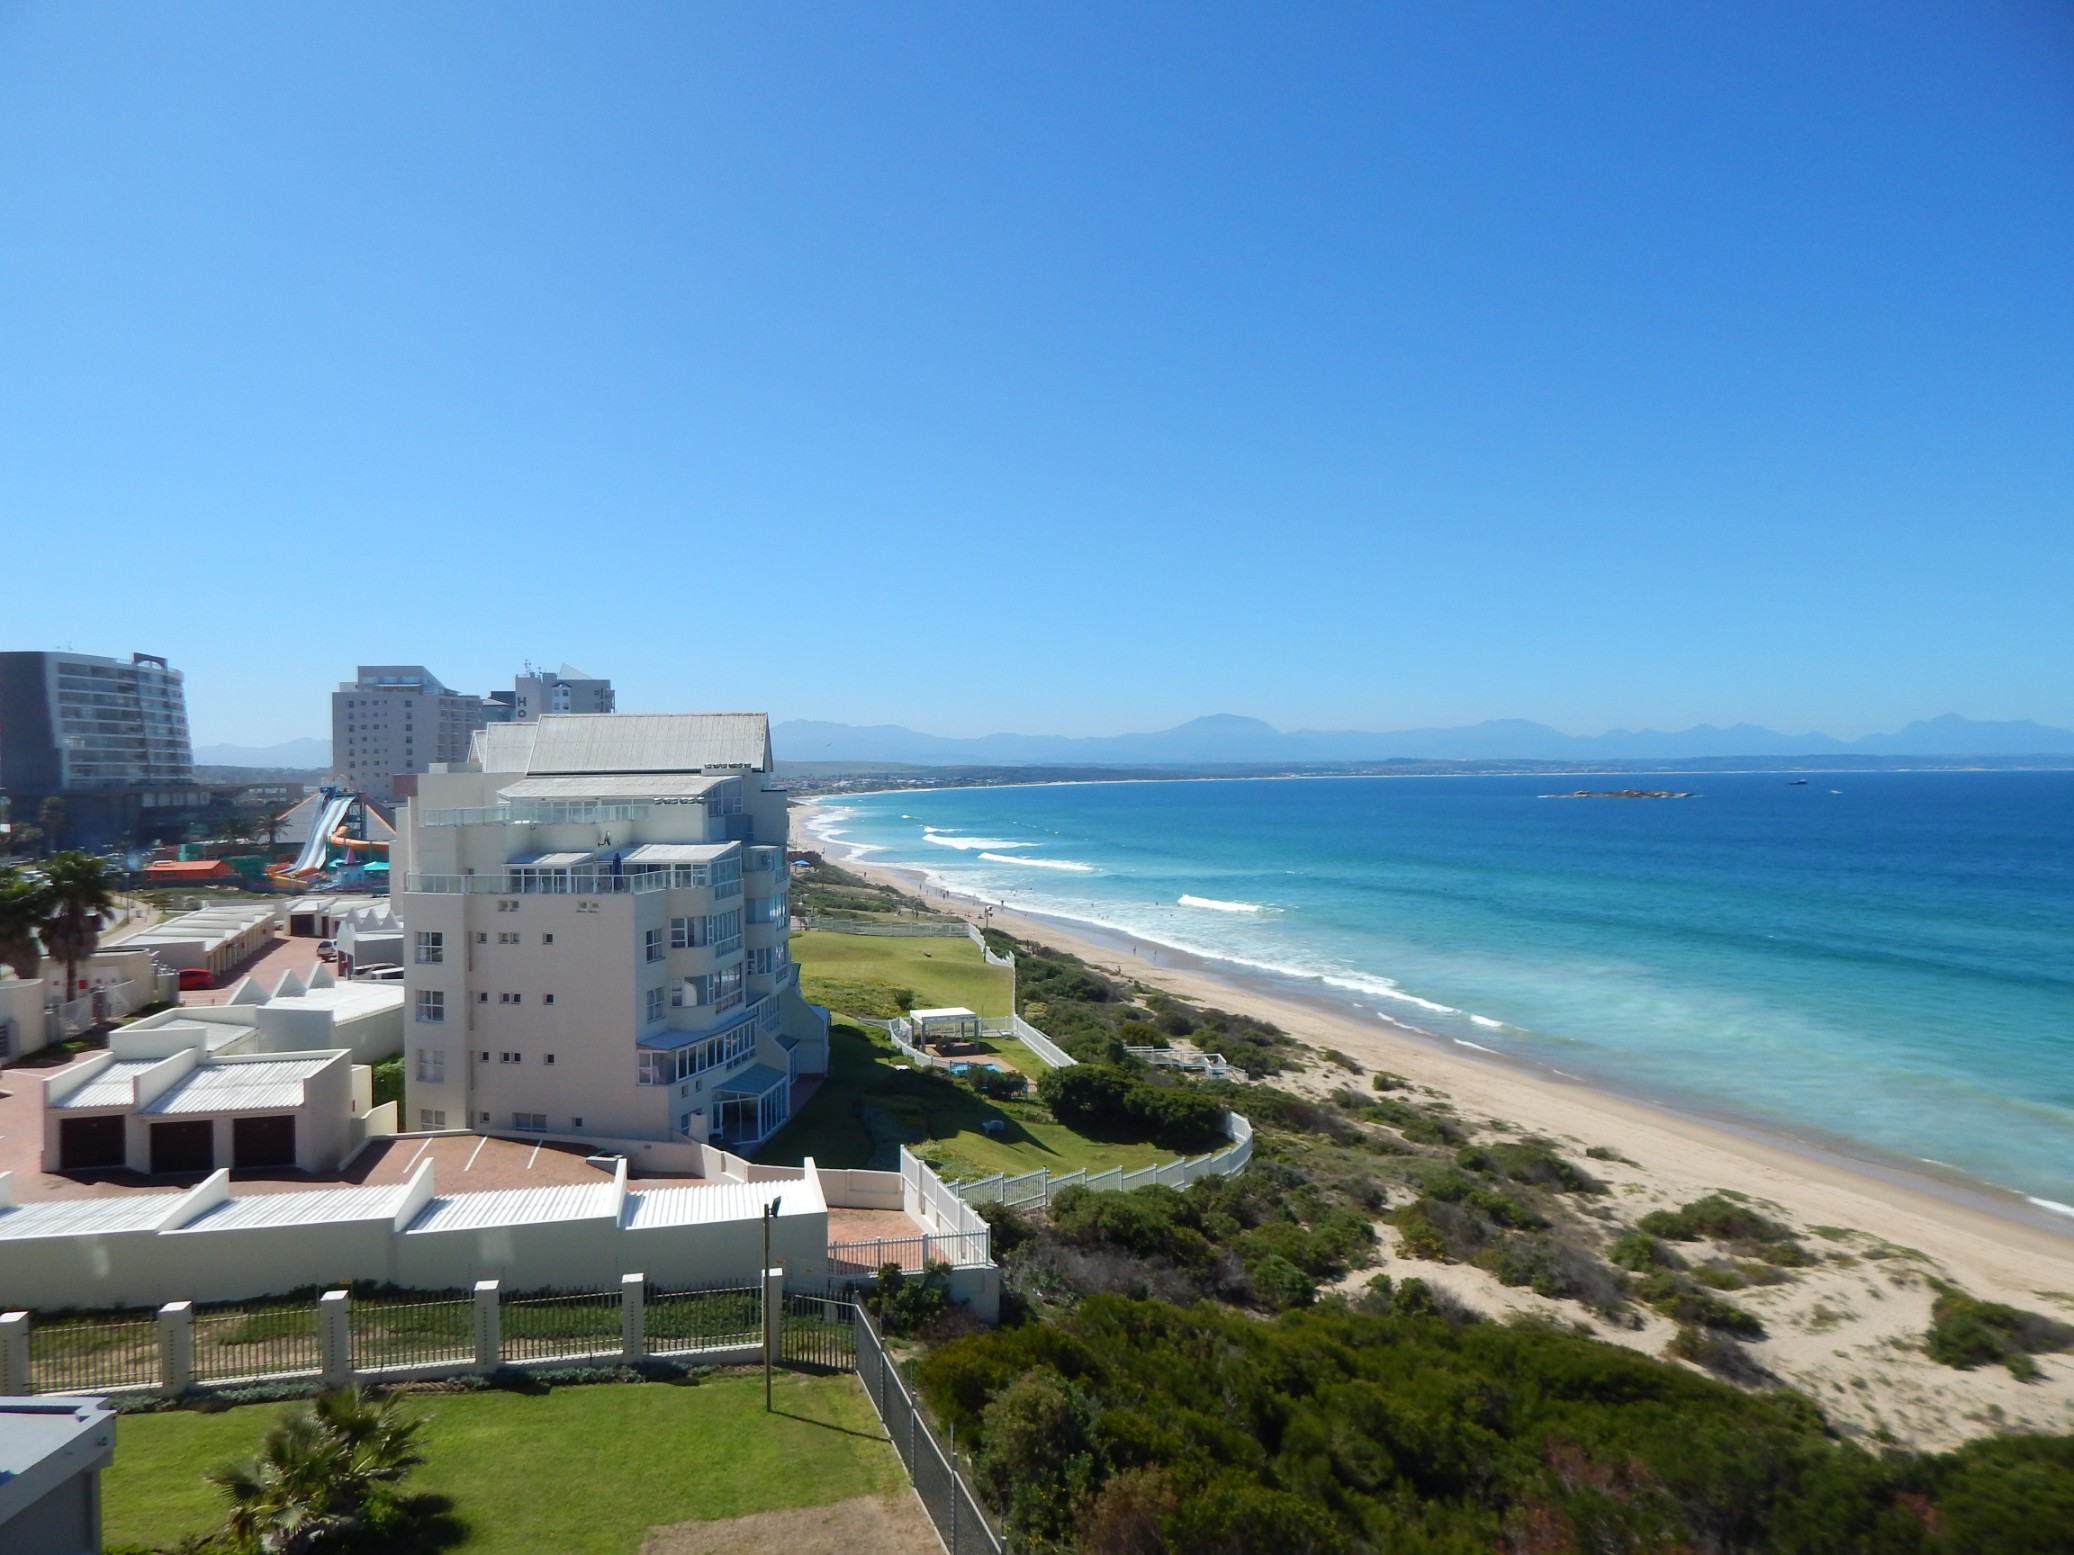 3 Bedroom Apartment for sale in Diaz Beach ENT0069020 : photo#7